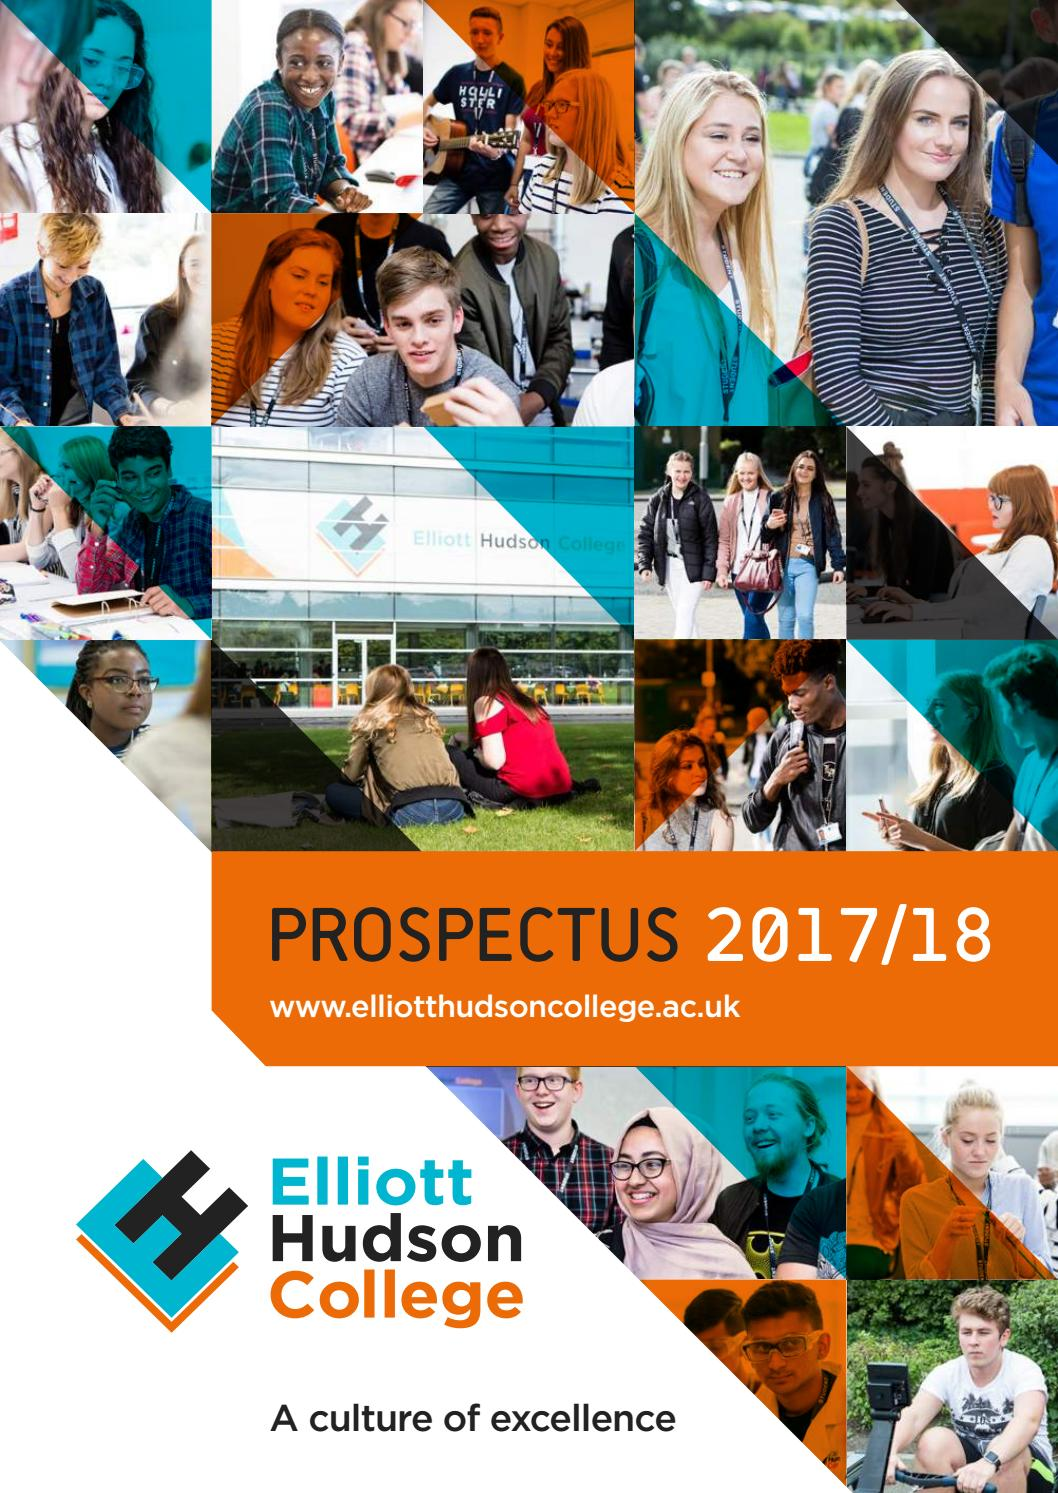 Ehc Prospectus 2017 2018 By Elliott Hudson College Issuu